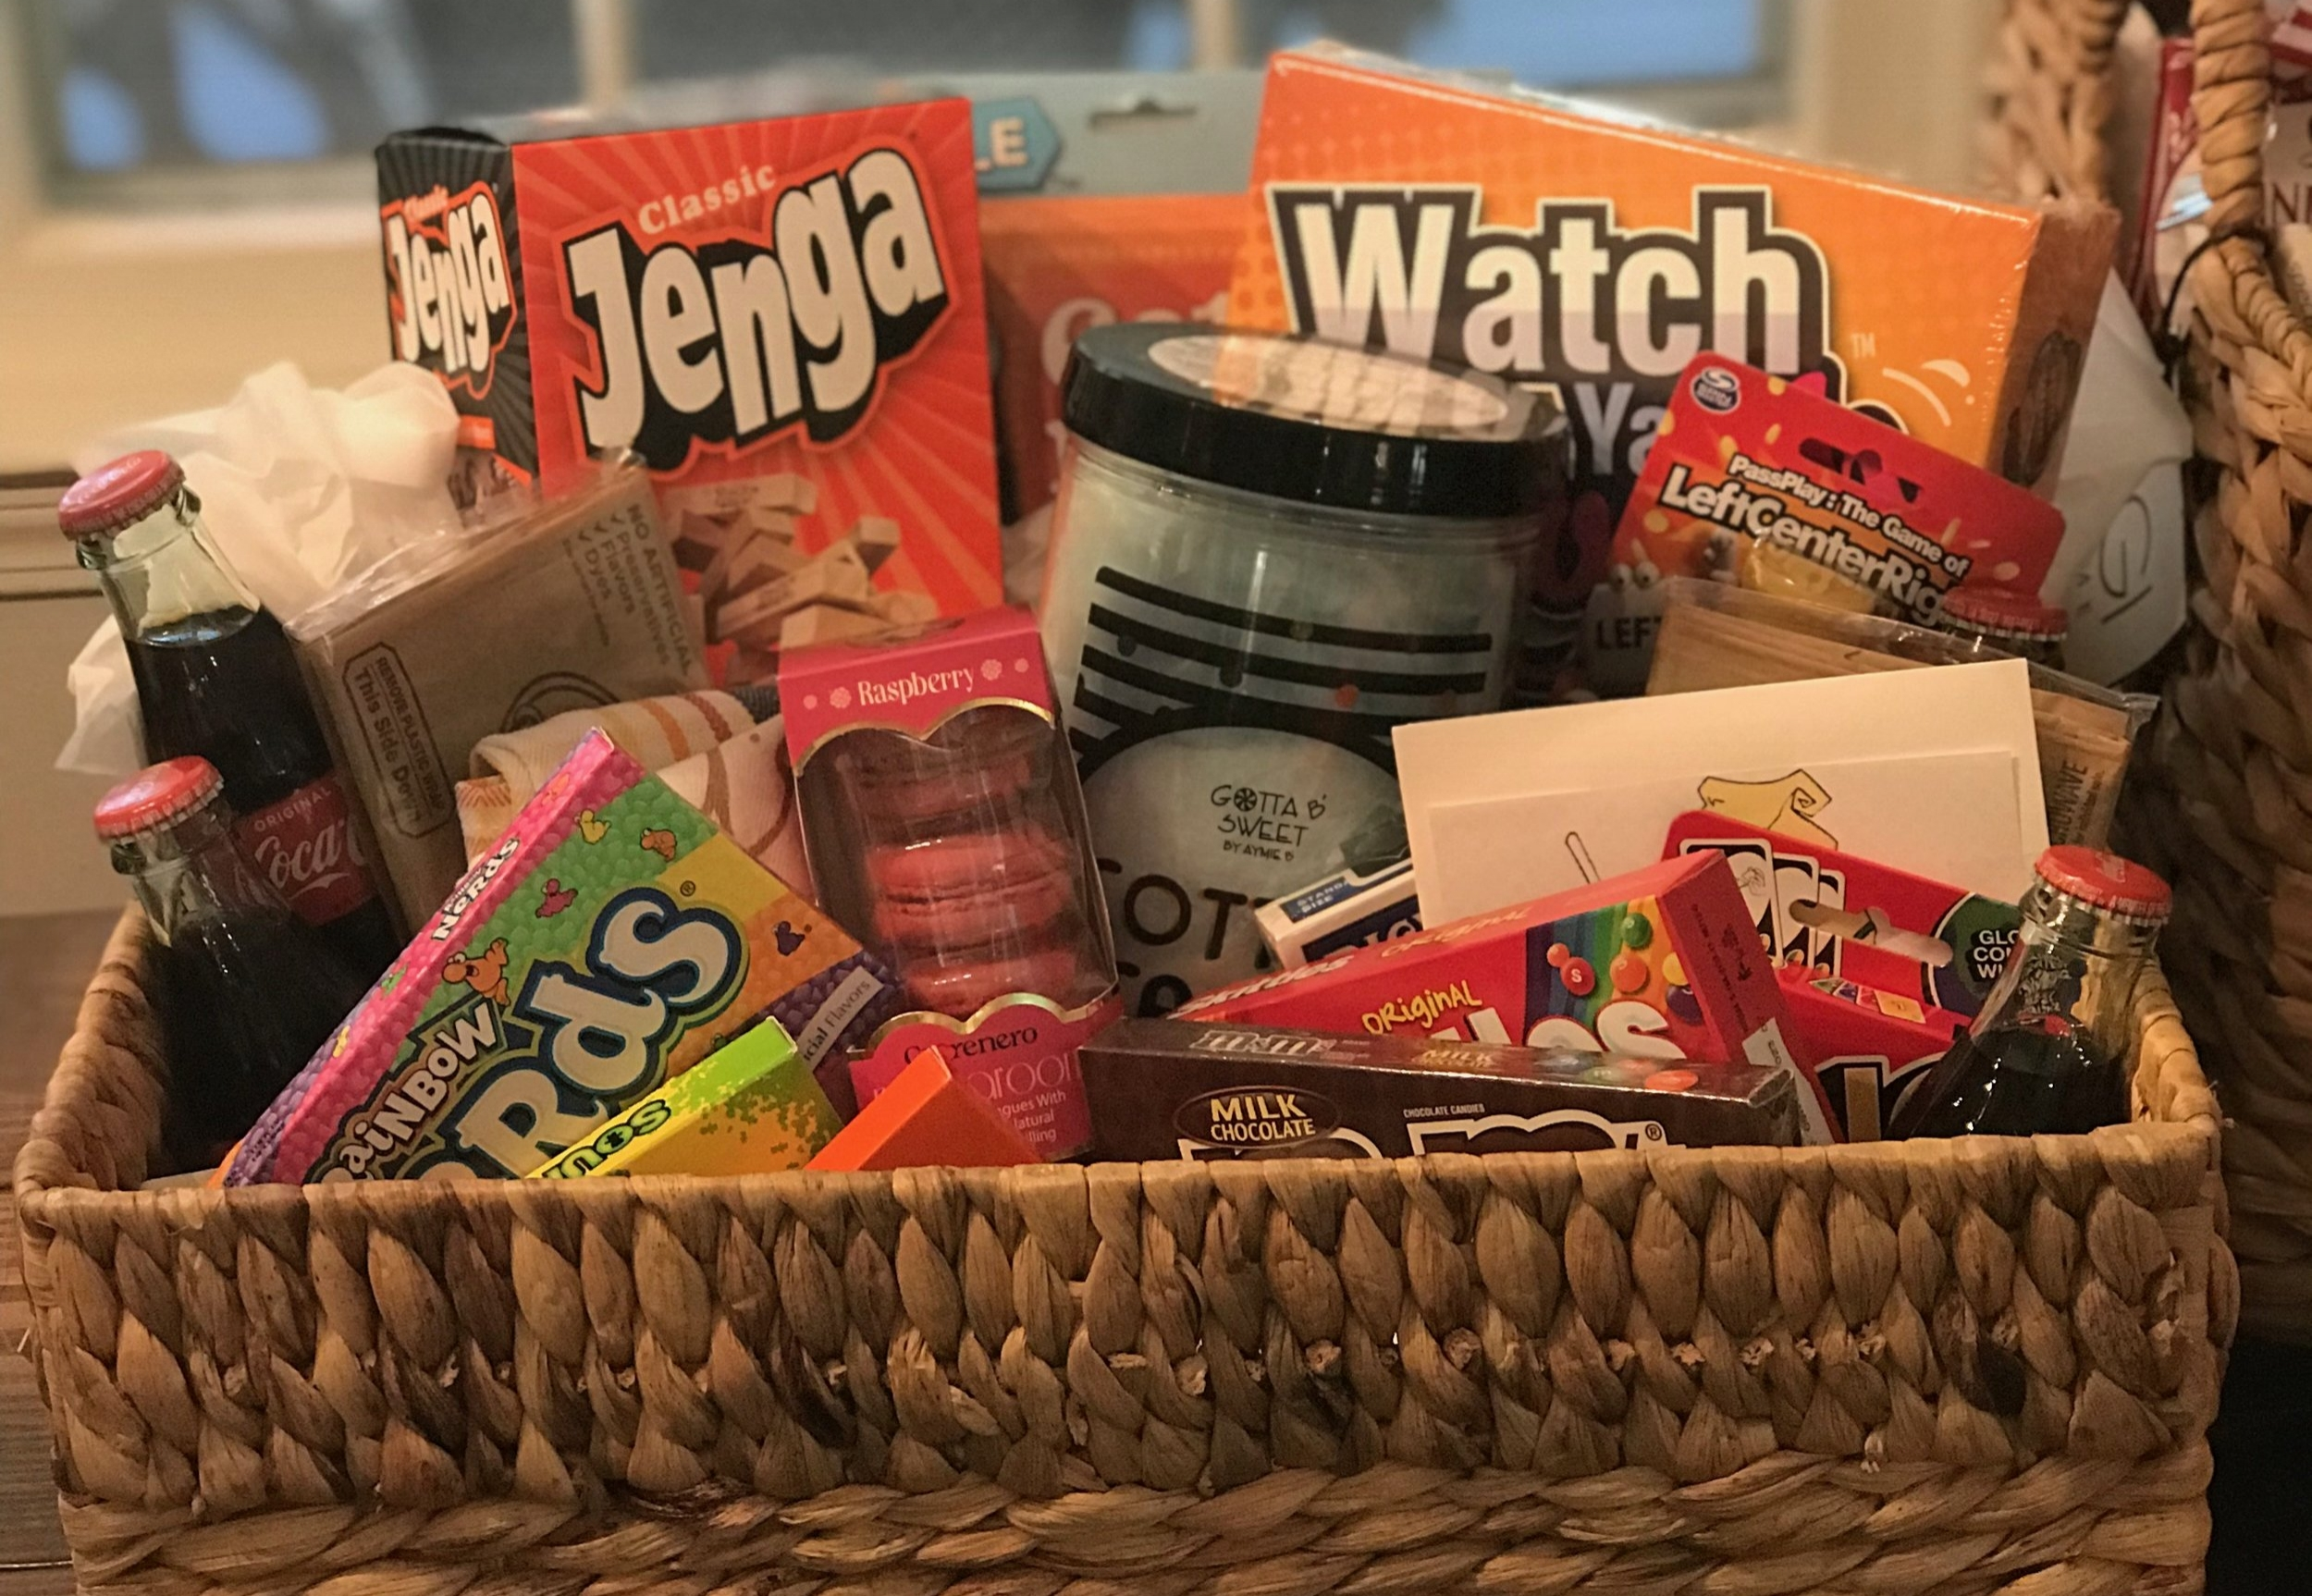 TAKEOUT, TREATS, GAMES AND MOVIE NIGHT BASKET   Stay in with the family and order out for a fun night of games and a movie. Included are $25 for takeout, Redbox gift card, Watch Ya Mouth, Jenga, 6-in-1 Cards, Left Right Center, Uno and a deck of cards, cotton candy, cookies, popcorn and other snacks.  DONOR: 1st Grade Classes VALUE: $125